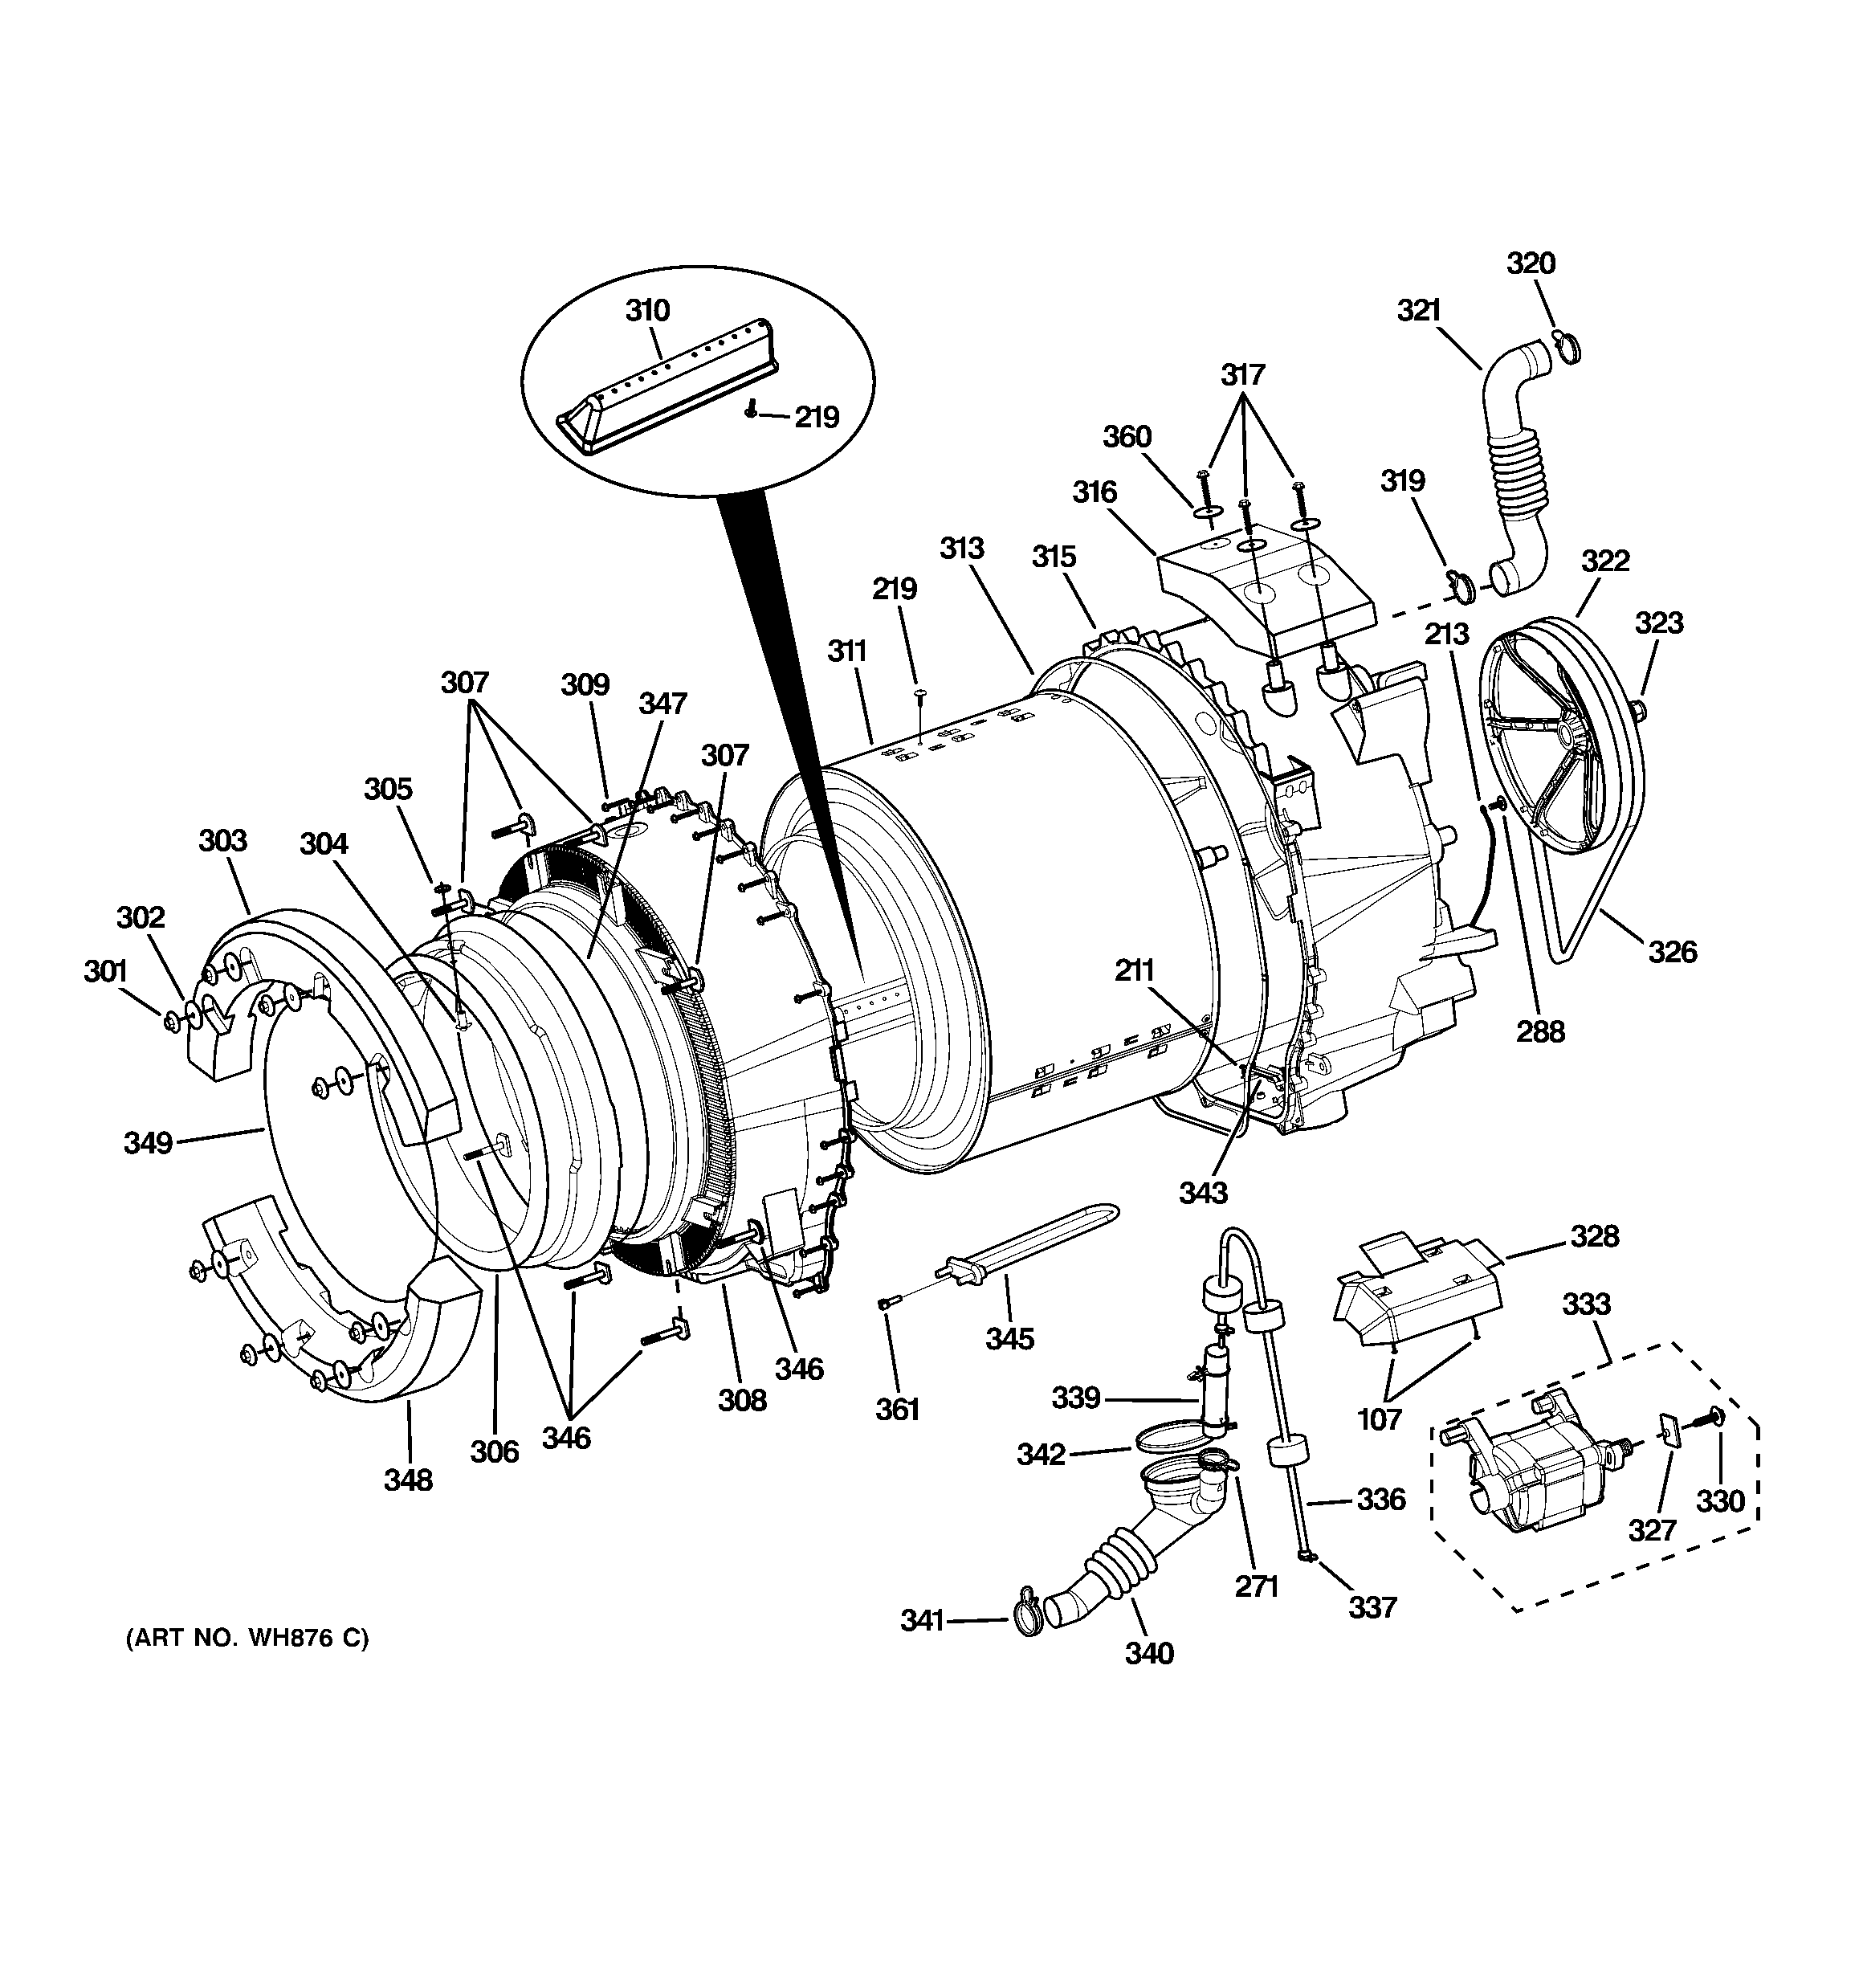 TUB & MOTOR Diagram & Parts List for Model wcvh6800j1ww GE